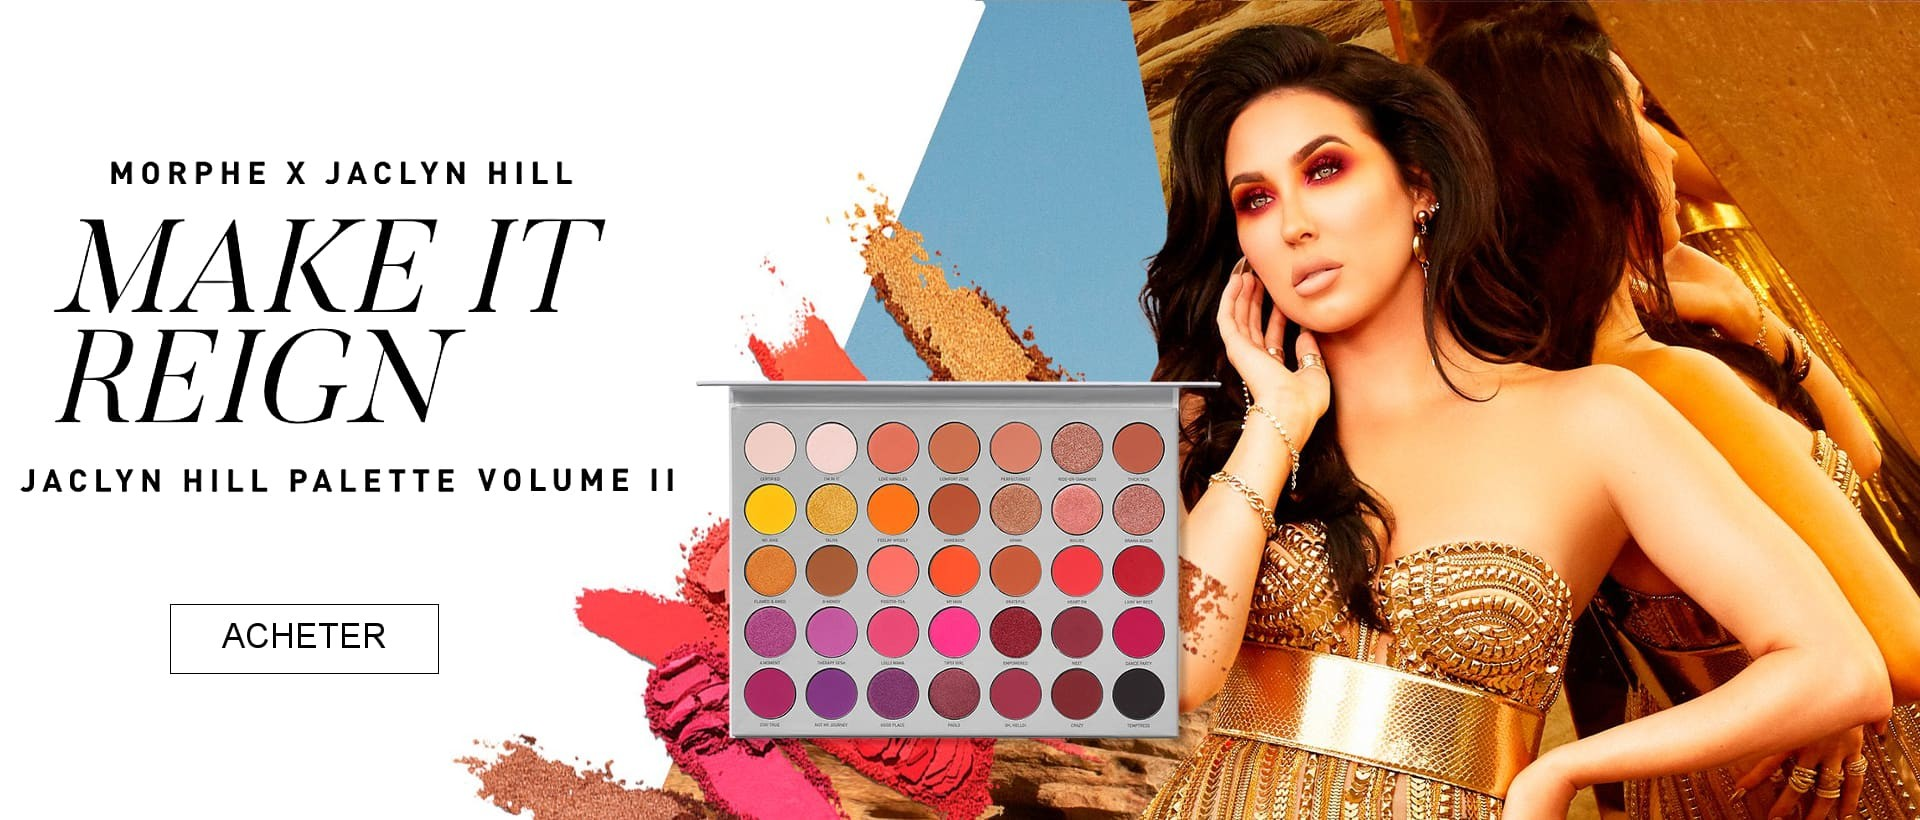 Morphe x Jaclyn Hill Eyeshadow Palette Volume II Fards A Paupieres Master Remix Brush Collection